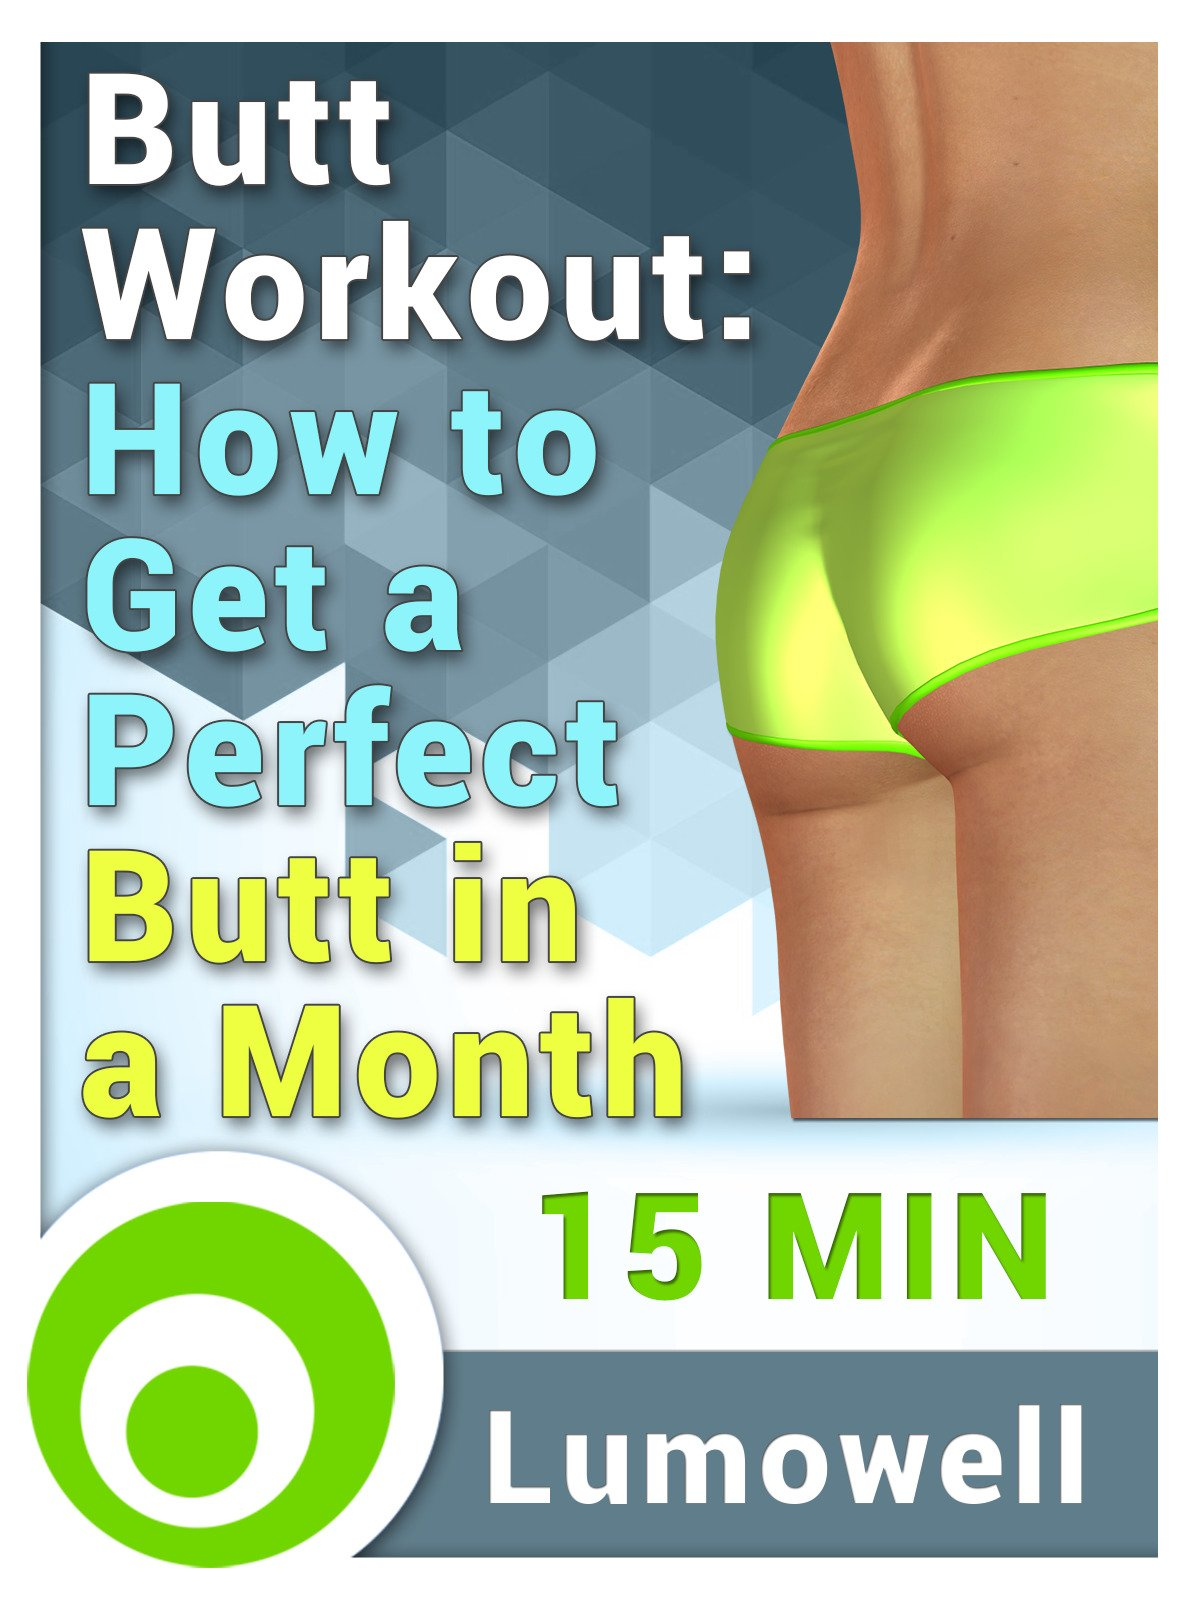 Butt Workout: How to Get a Perfect Butt in a Month